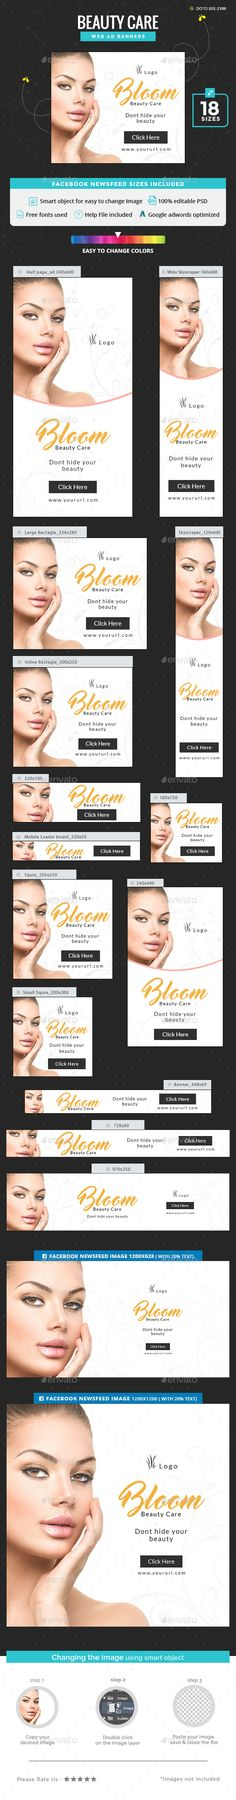 Beauty Care Banners — Photoshop PSD #web banner #multi purpose • Available here → https://graphicriver.net/item/beauty-care-banners/20192724?ref=pxcr